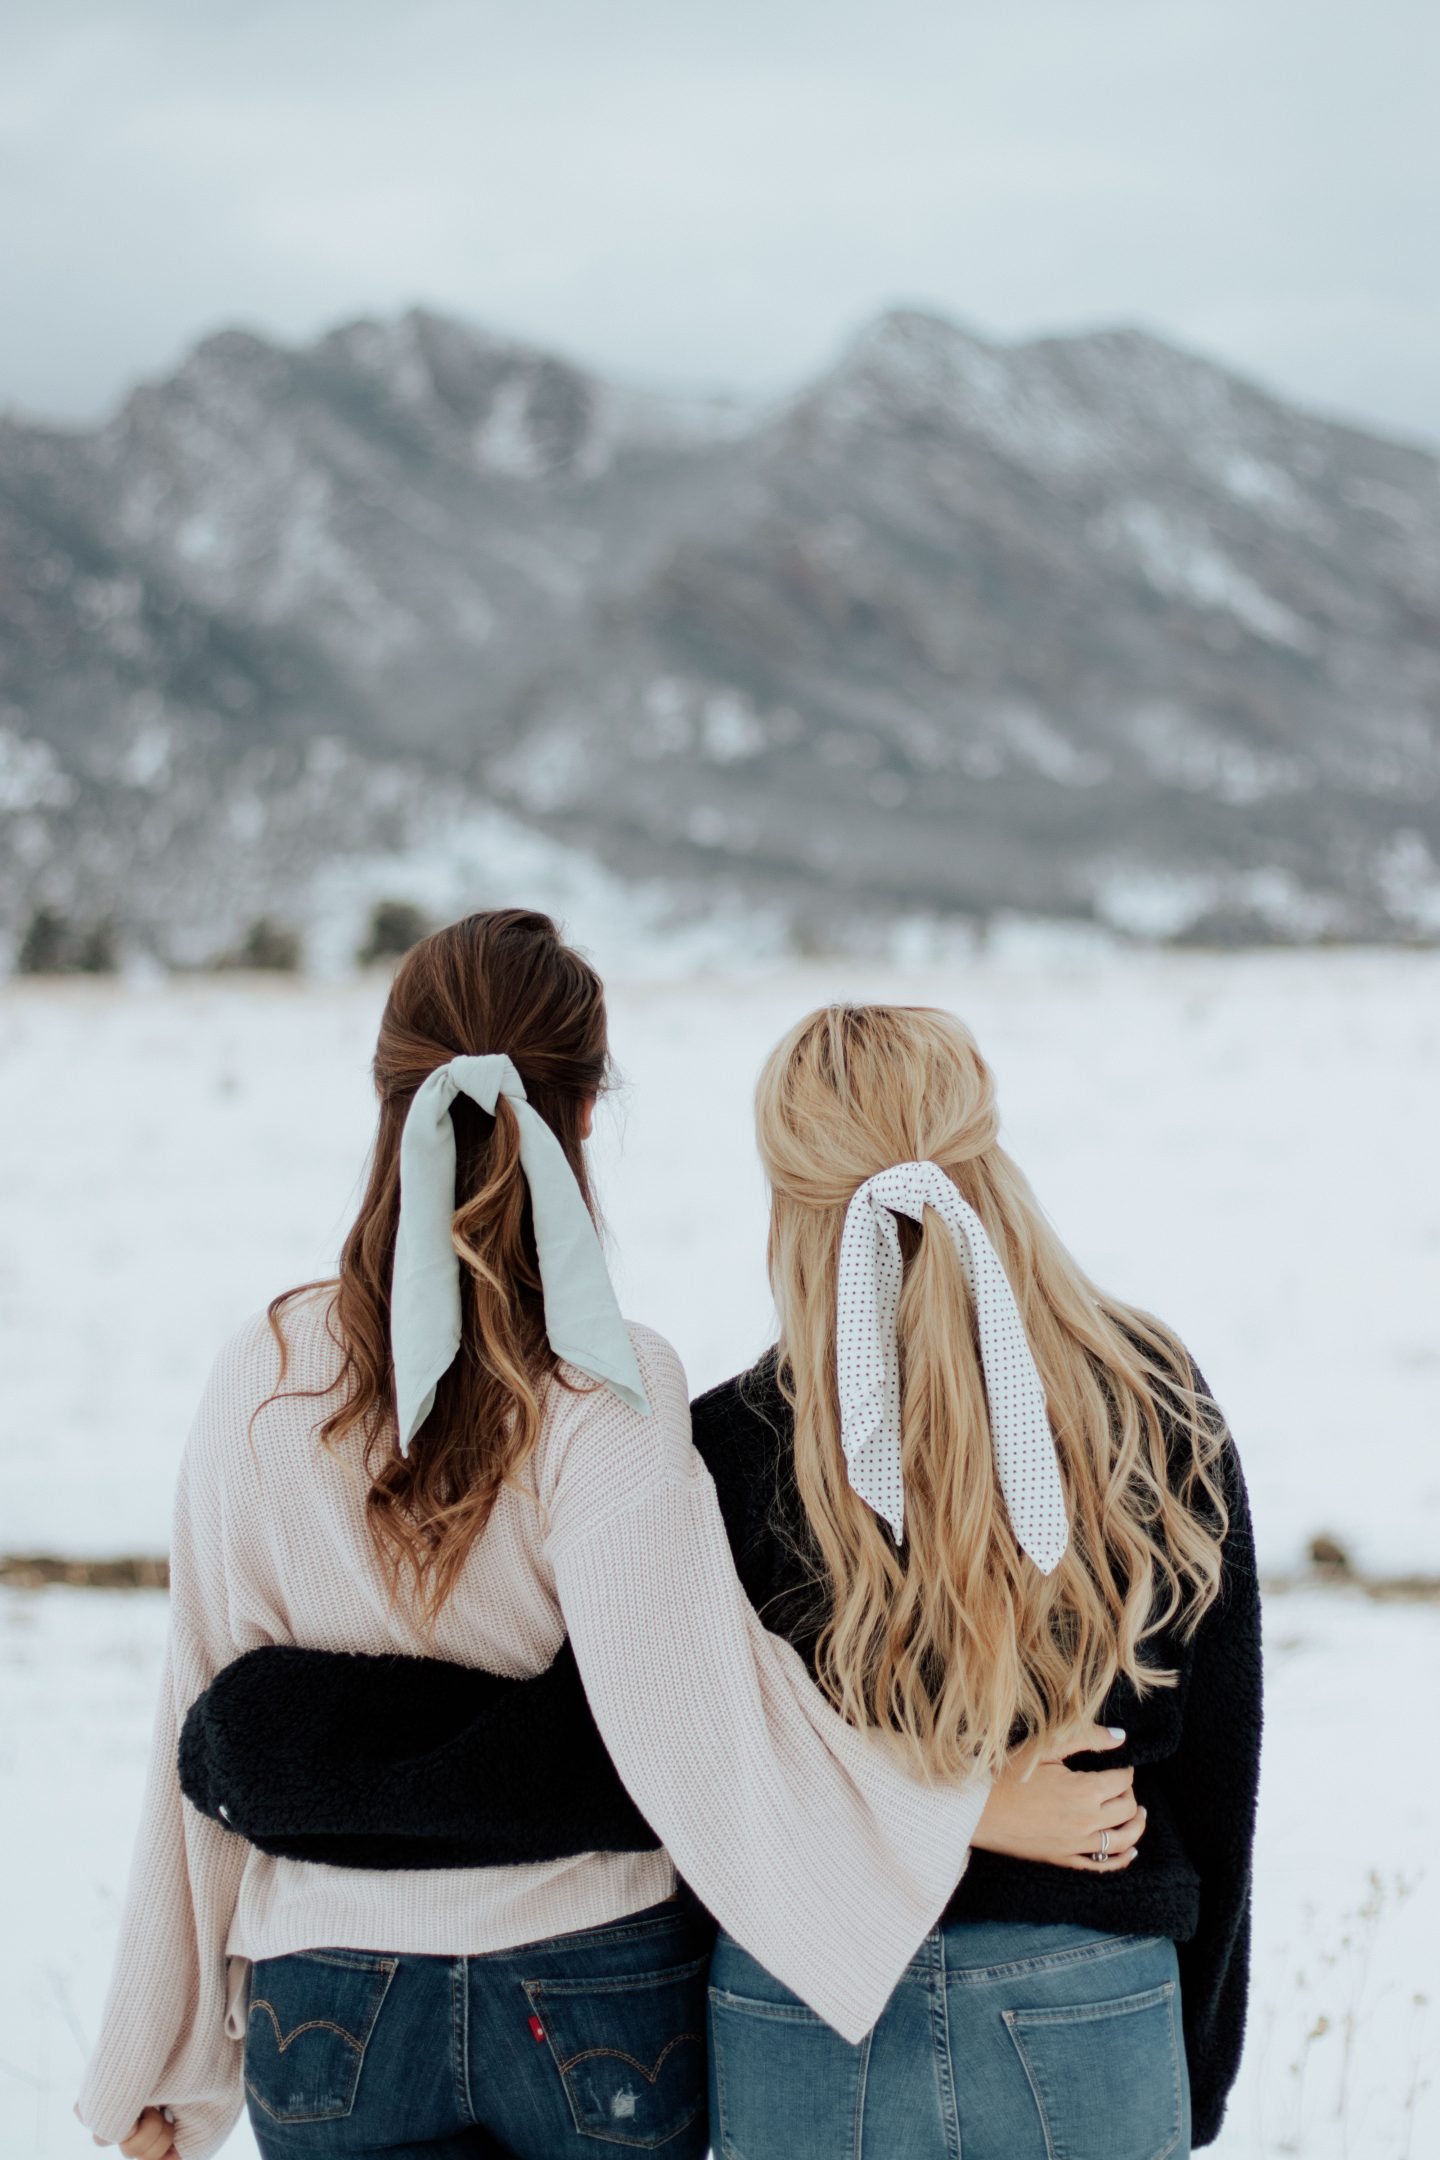 HAIR SCARVES AND SNOWY VIEWS